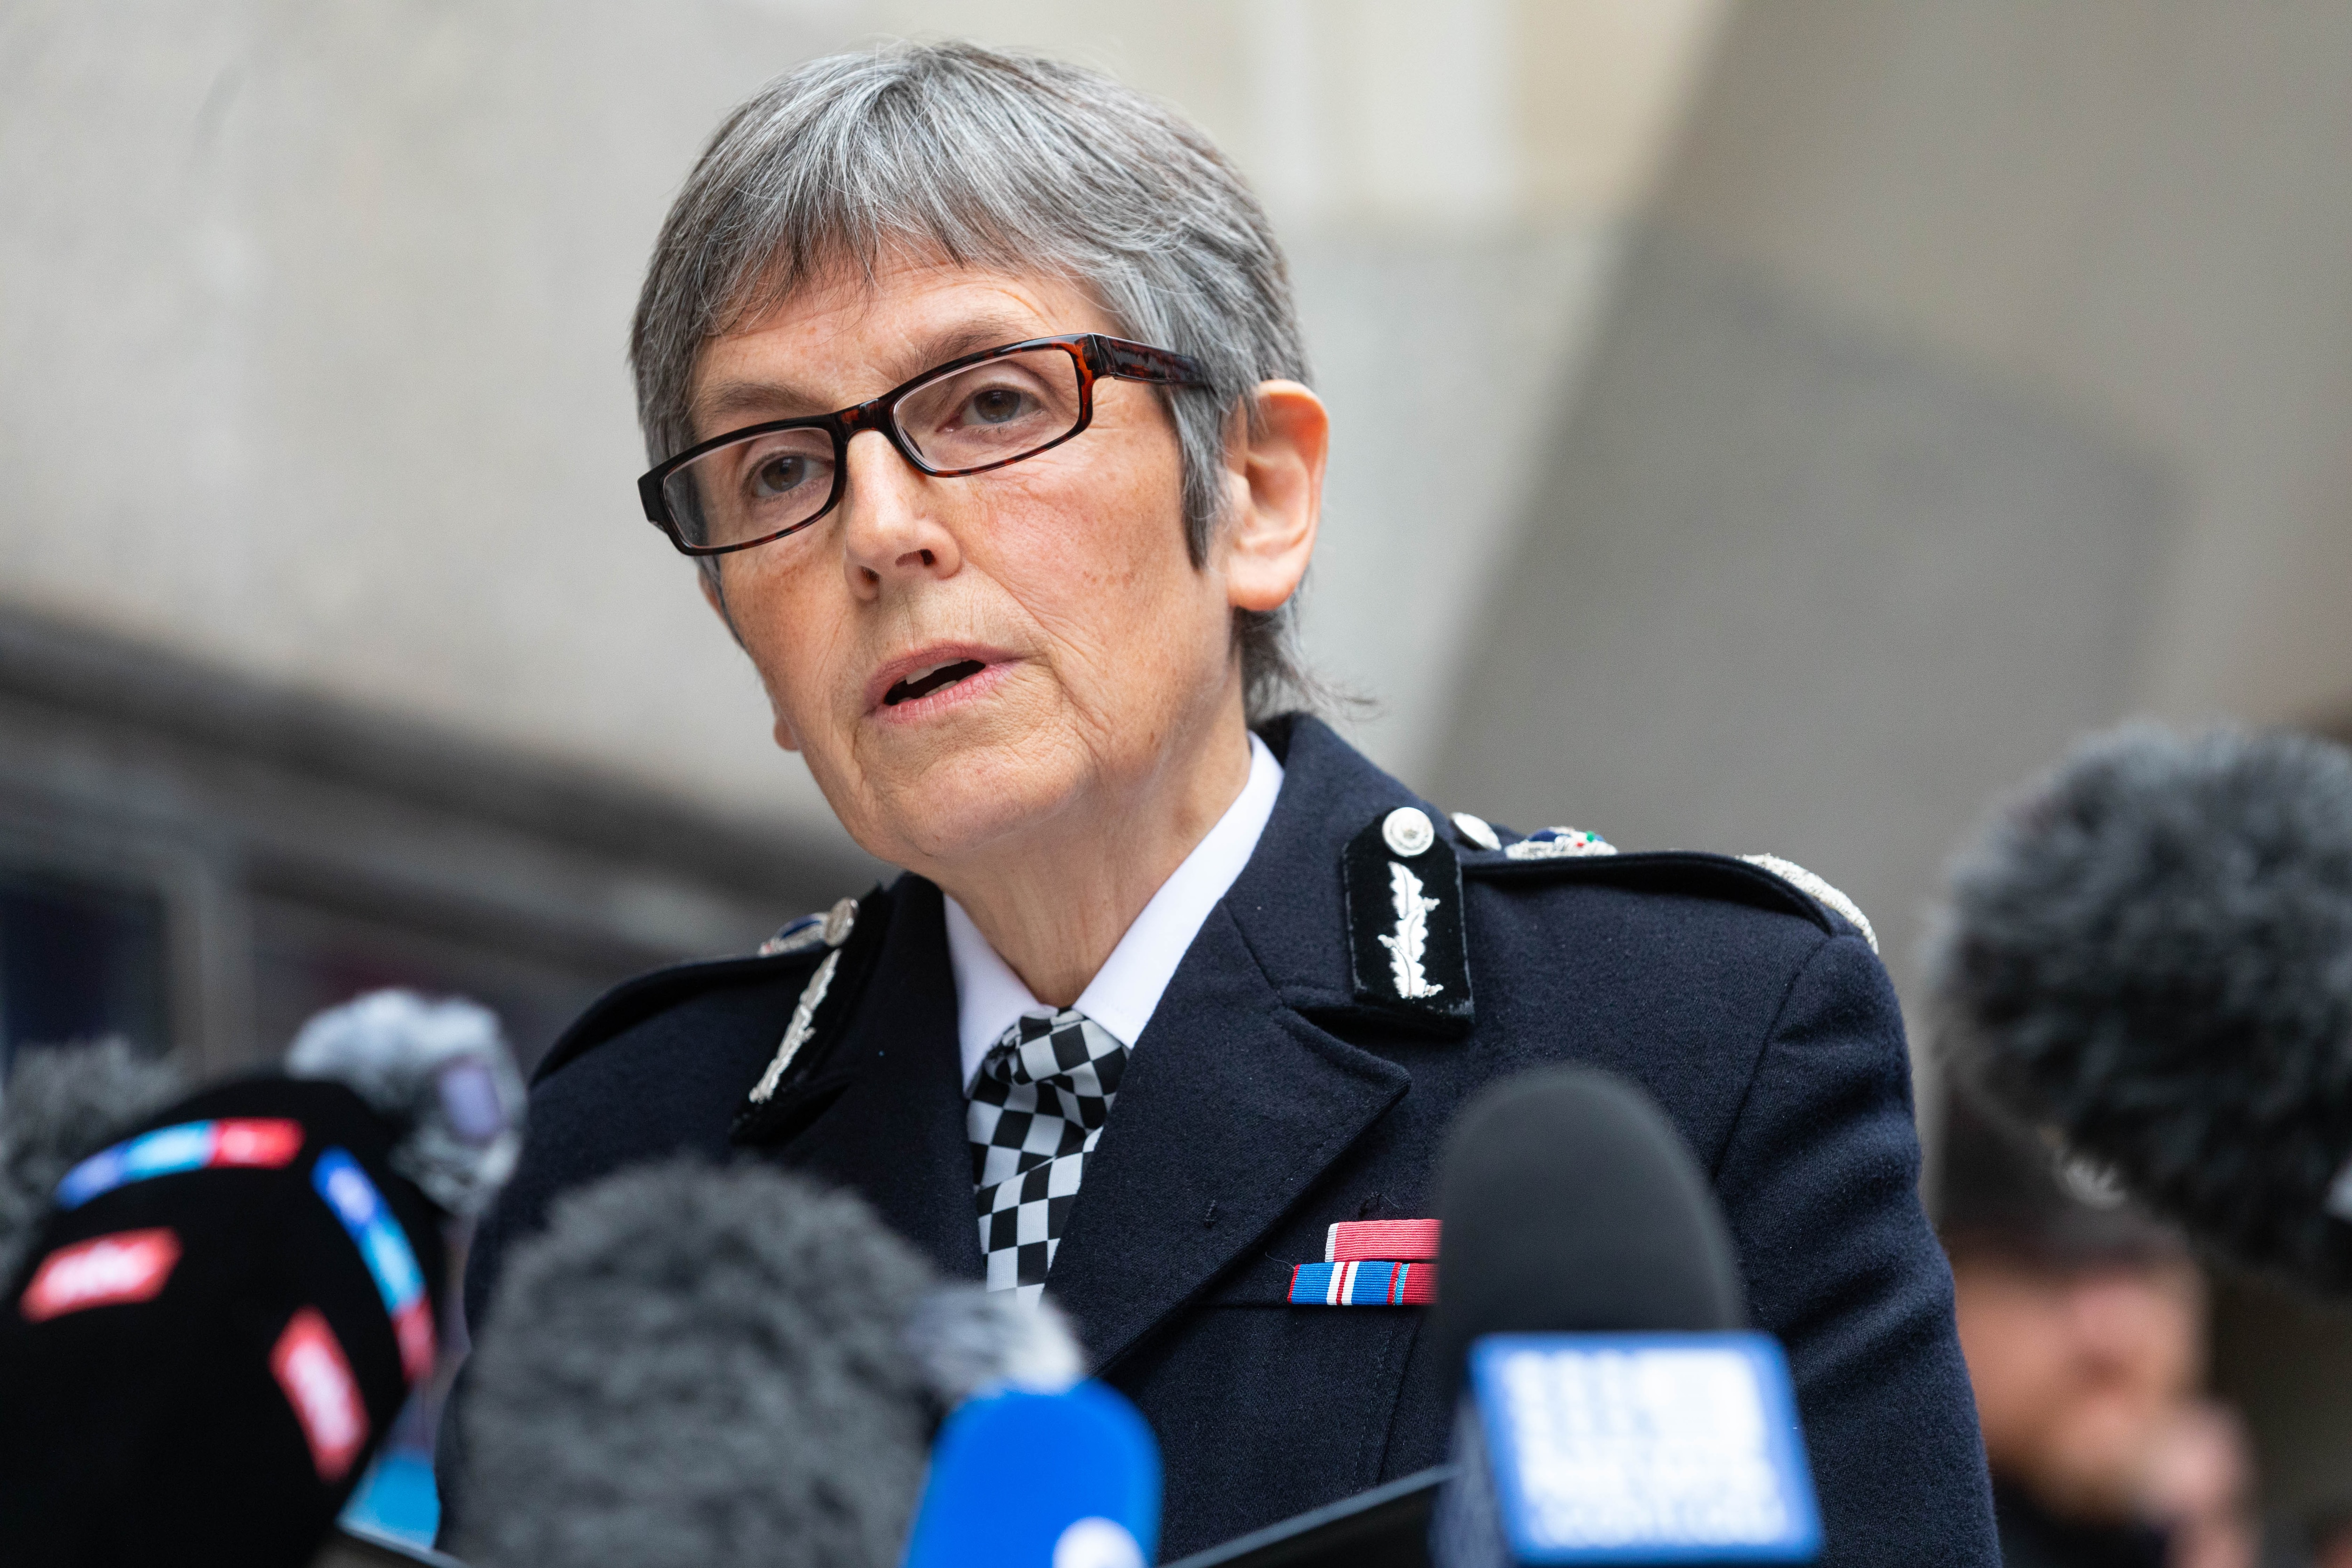 Metropolitan Police Commissioner Dame Cressida Dick makes a statement to the media outside the Old Bailey in London.